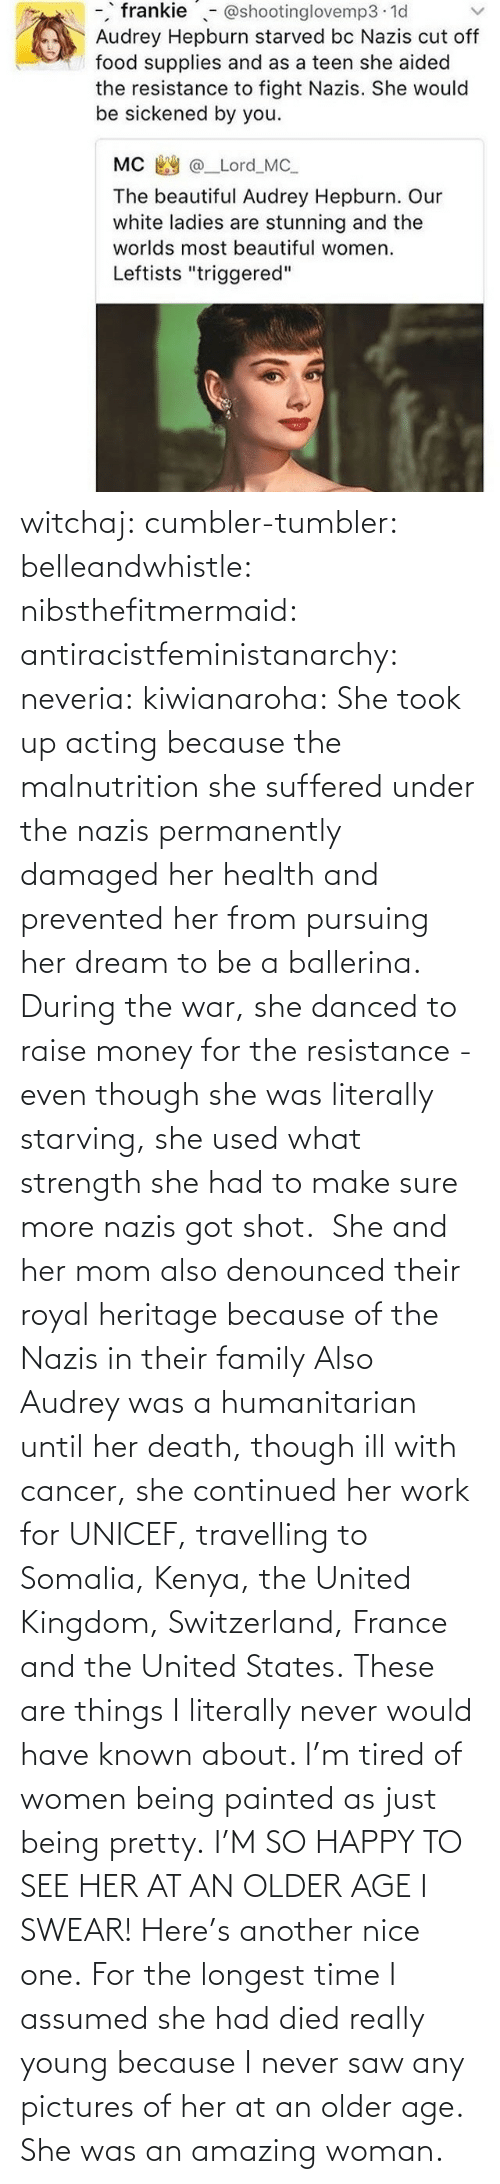 her: witchaj: cumbler-tumbler:  belleandwhistle:  nibsthefitmermaid:  antiracistfeministanarchy:  neveria:  kiwianaroha: She took up acting because the malnutrition she suffered under the nazis permanently damaged her health and prevented her from pursuing her dream to be a ballerina. During the war, she danced to raise money for the resistance - even though she was literally starving, she used what strength she had to make sure more nazis got shot.  She and her mom also denounced their royal heritage because of the Nazis in their family  Also Audrey was a humanitarian until her death, though ill with cancer, she continued her work for UNICEF, travelling to Somalia, Kenya, the United Kingdom, Switzerland, France and the United States.  These are things I literally never would have known about. I'm tired of women being painted as just being pretty.  I'M SO HAPPY TO SEE HER AT AN OLDER AGE I SWEAR!  Here's another nice one.   For the longest time I assumed she had died really young because I never saw any pictures of her at an older age.  She was an amazing woman.